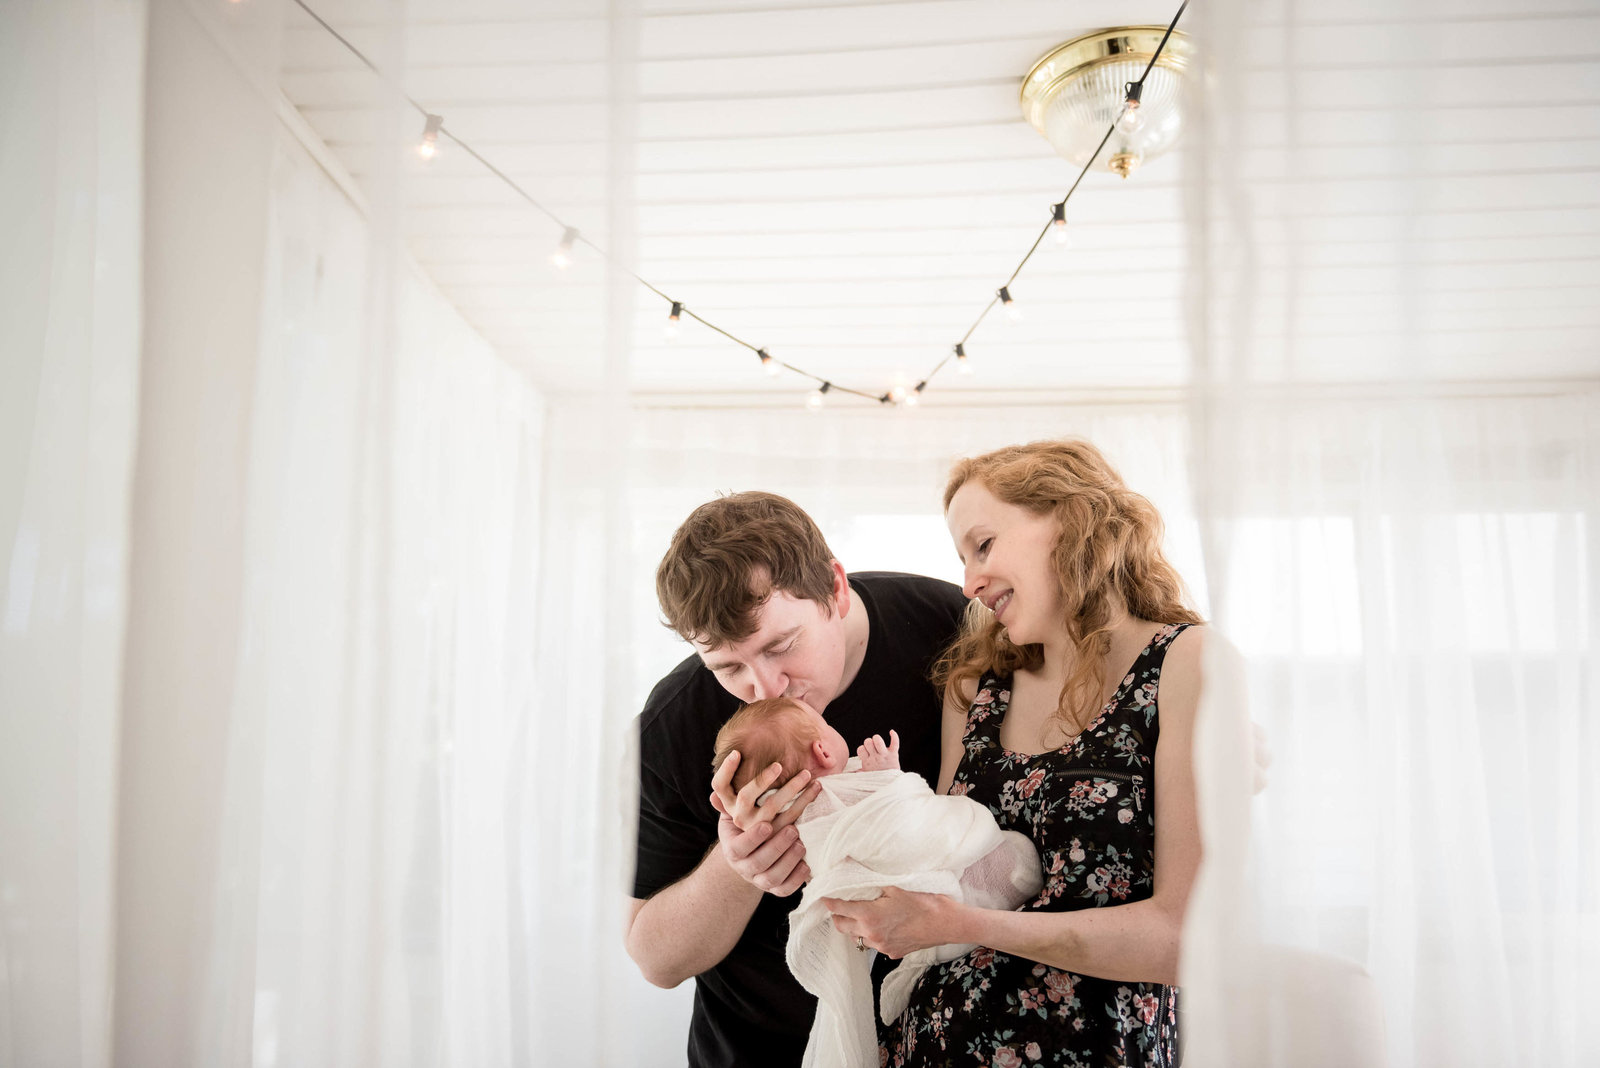 Boston-Newborn-Photographer-Lifestyle-Documentary-Home-Styled-Session-419